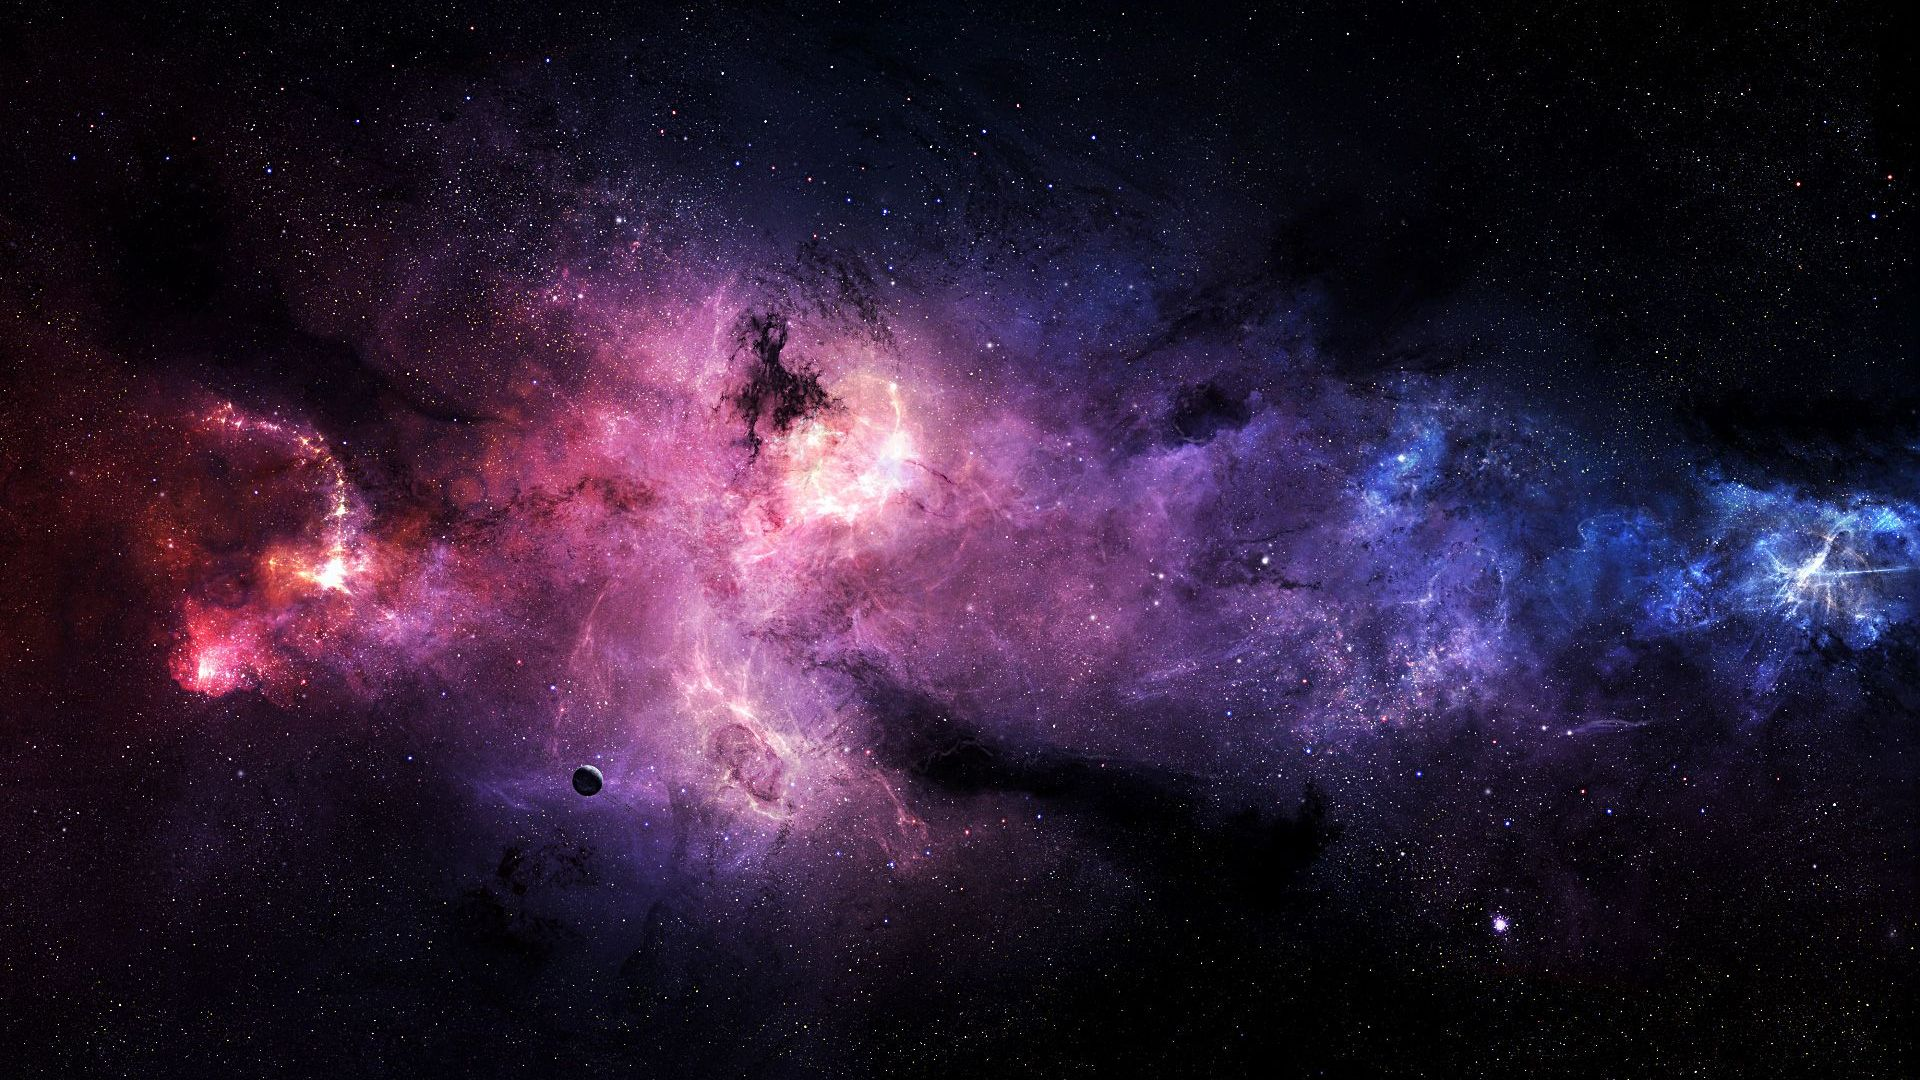 Purple And Blue On Galaxy Wallpaper HD Wallpaper with 1920x1080 ...